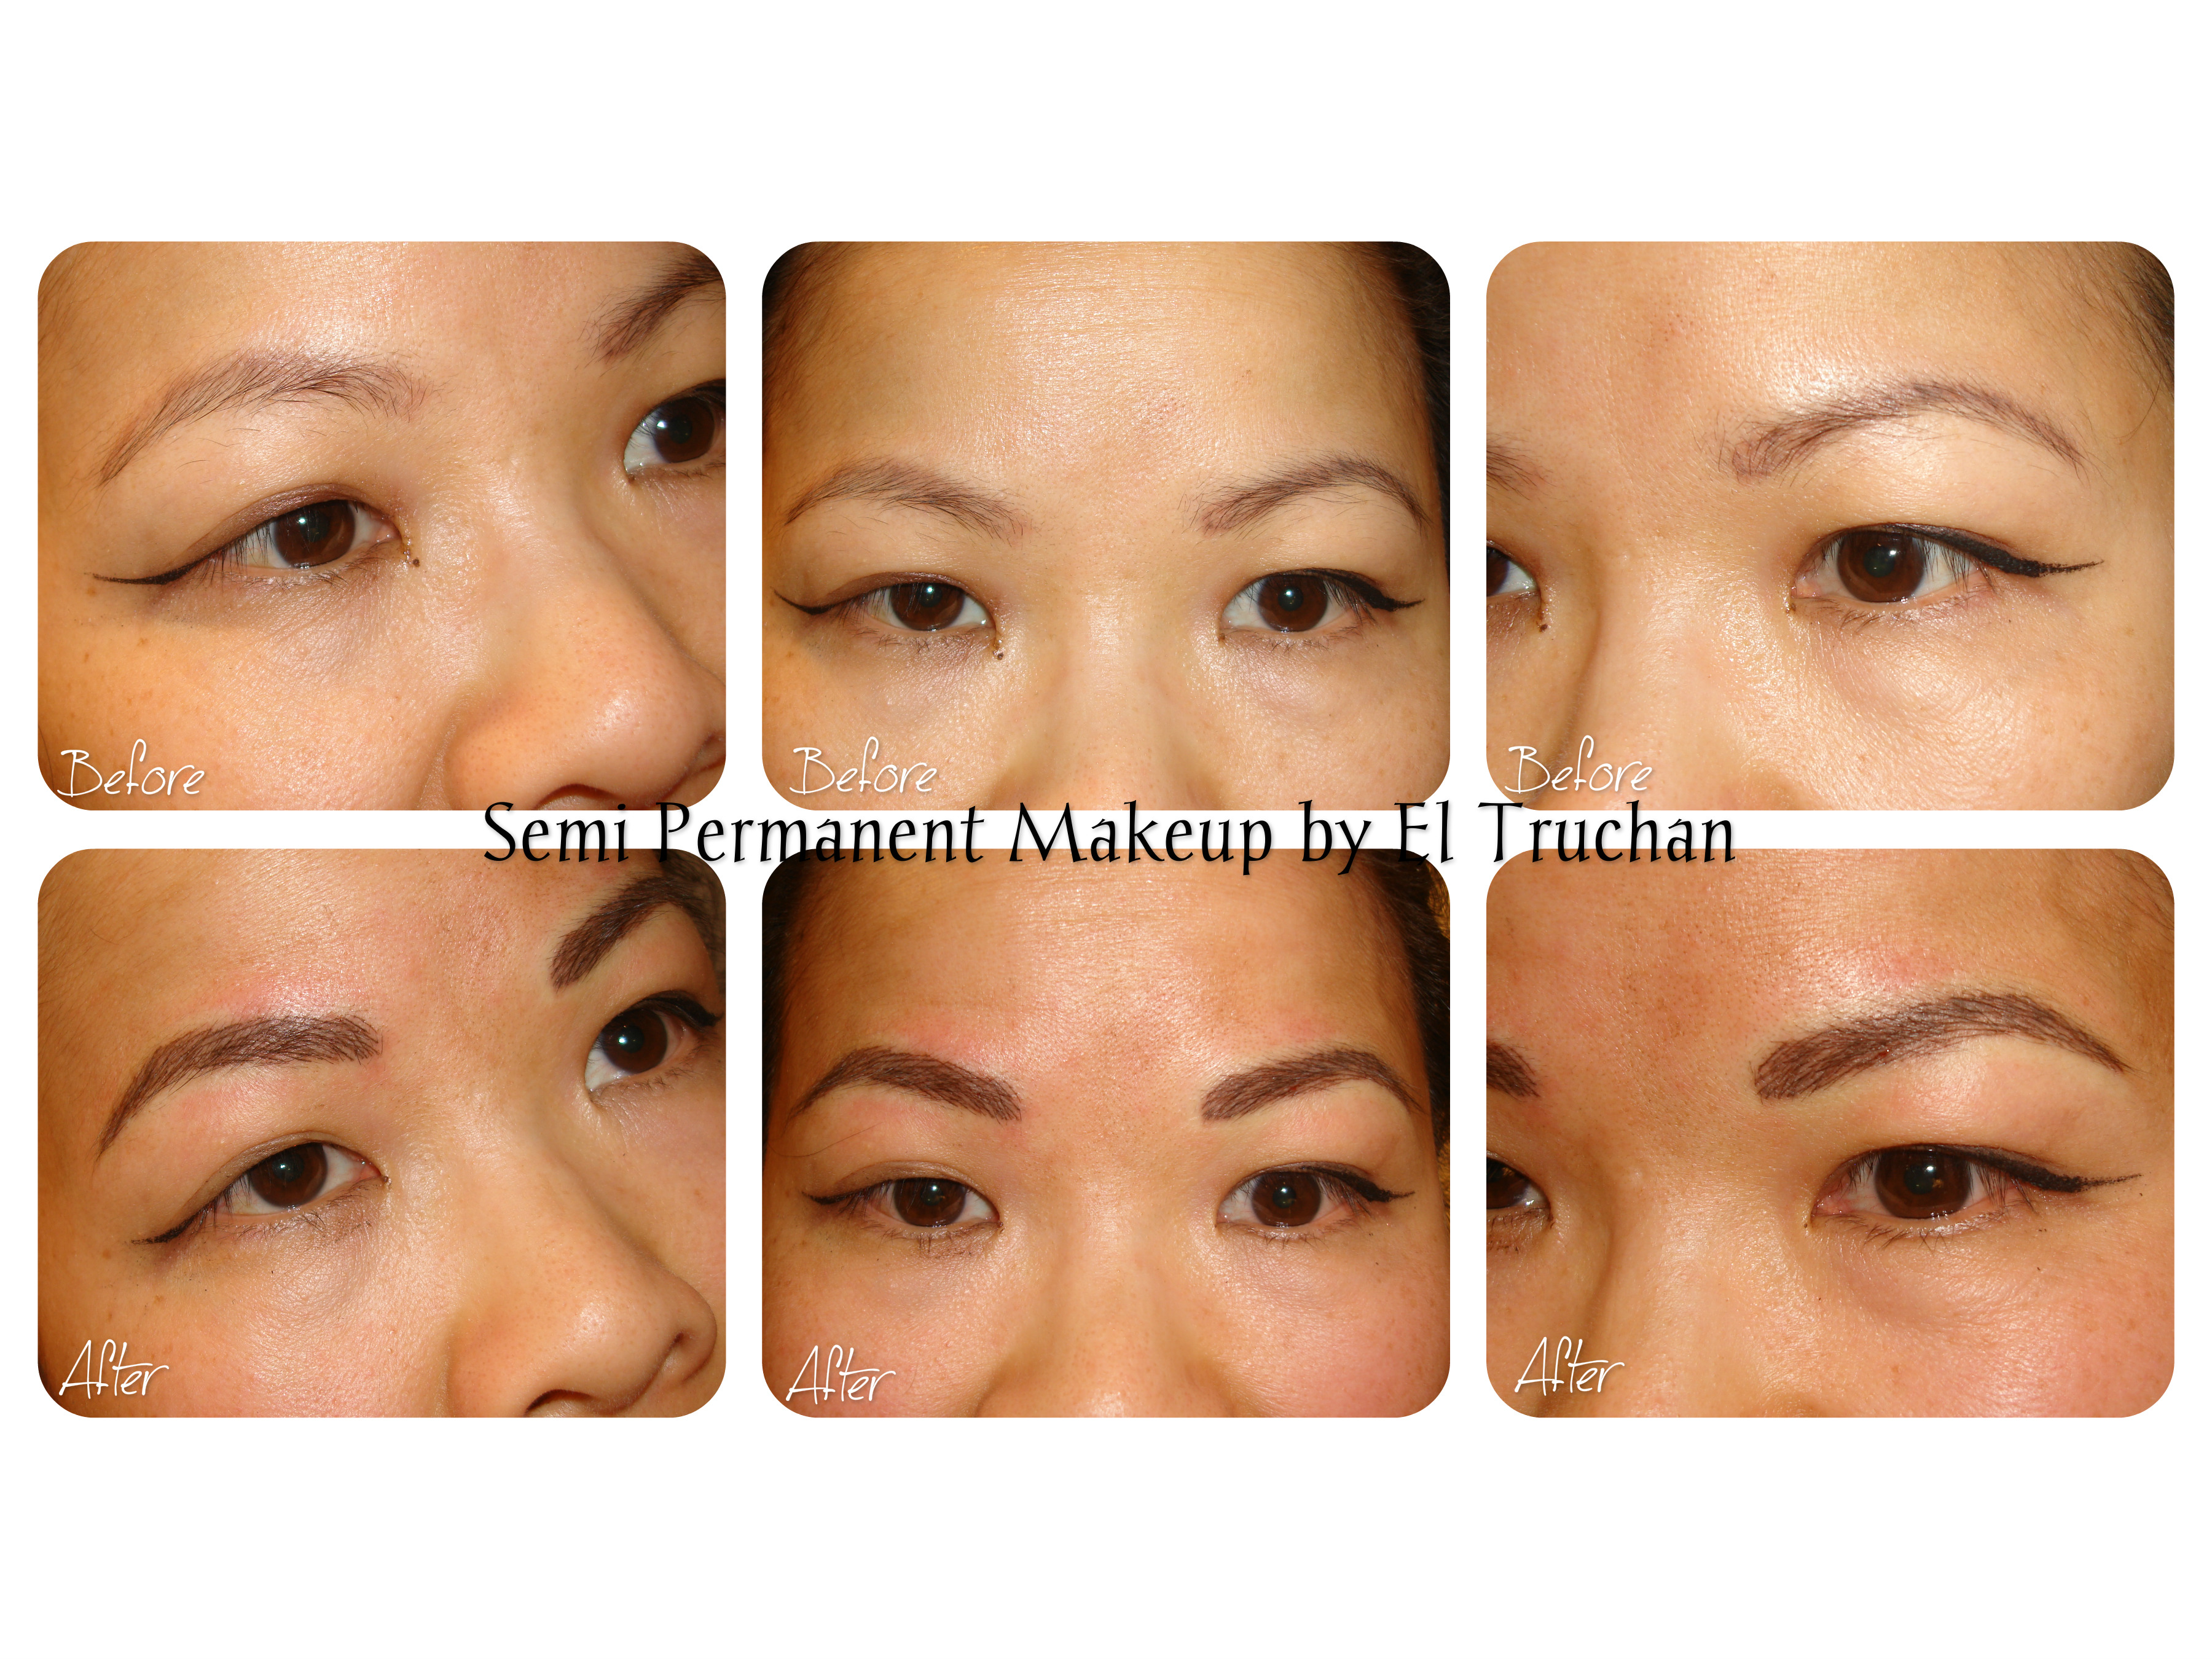 Semi Permanent Makeup by El Truchan